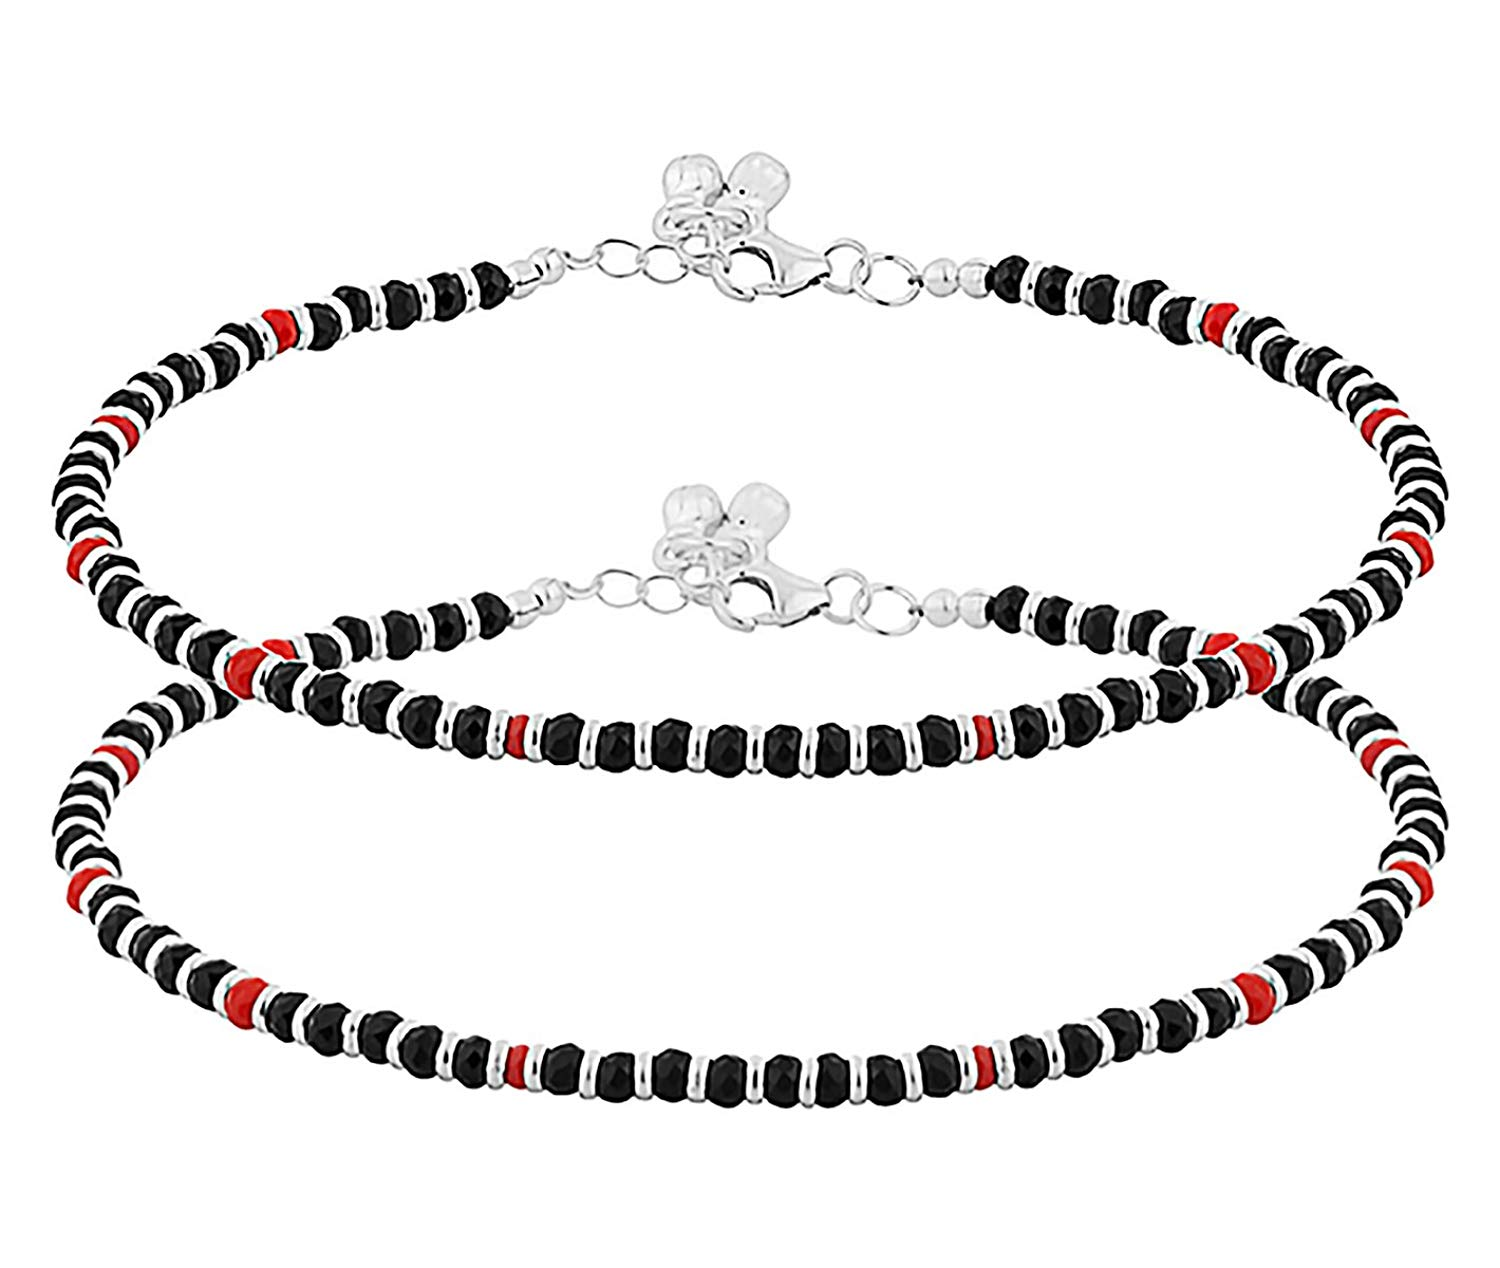 D&D Crafts RED AND BLACK BEADED ANKLETS IN STERLING SILVER For Women, Girls